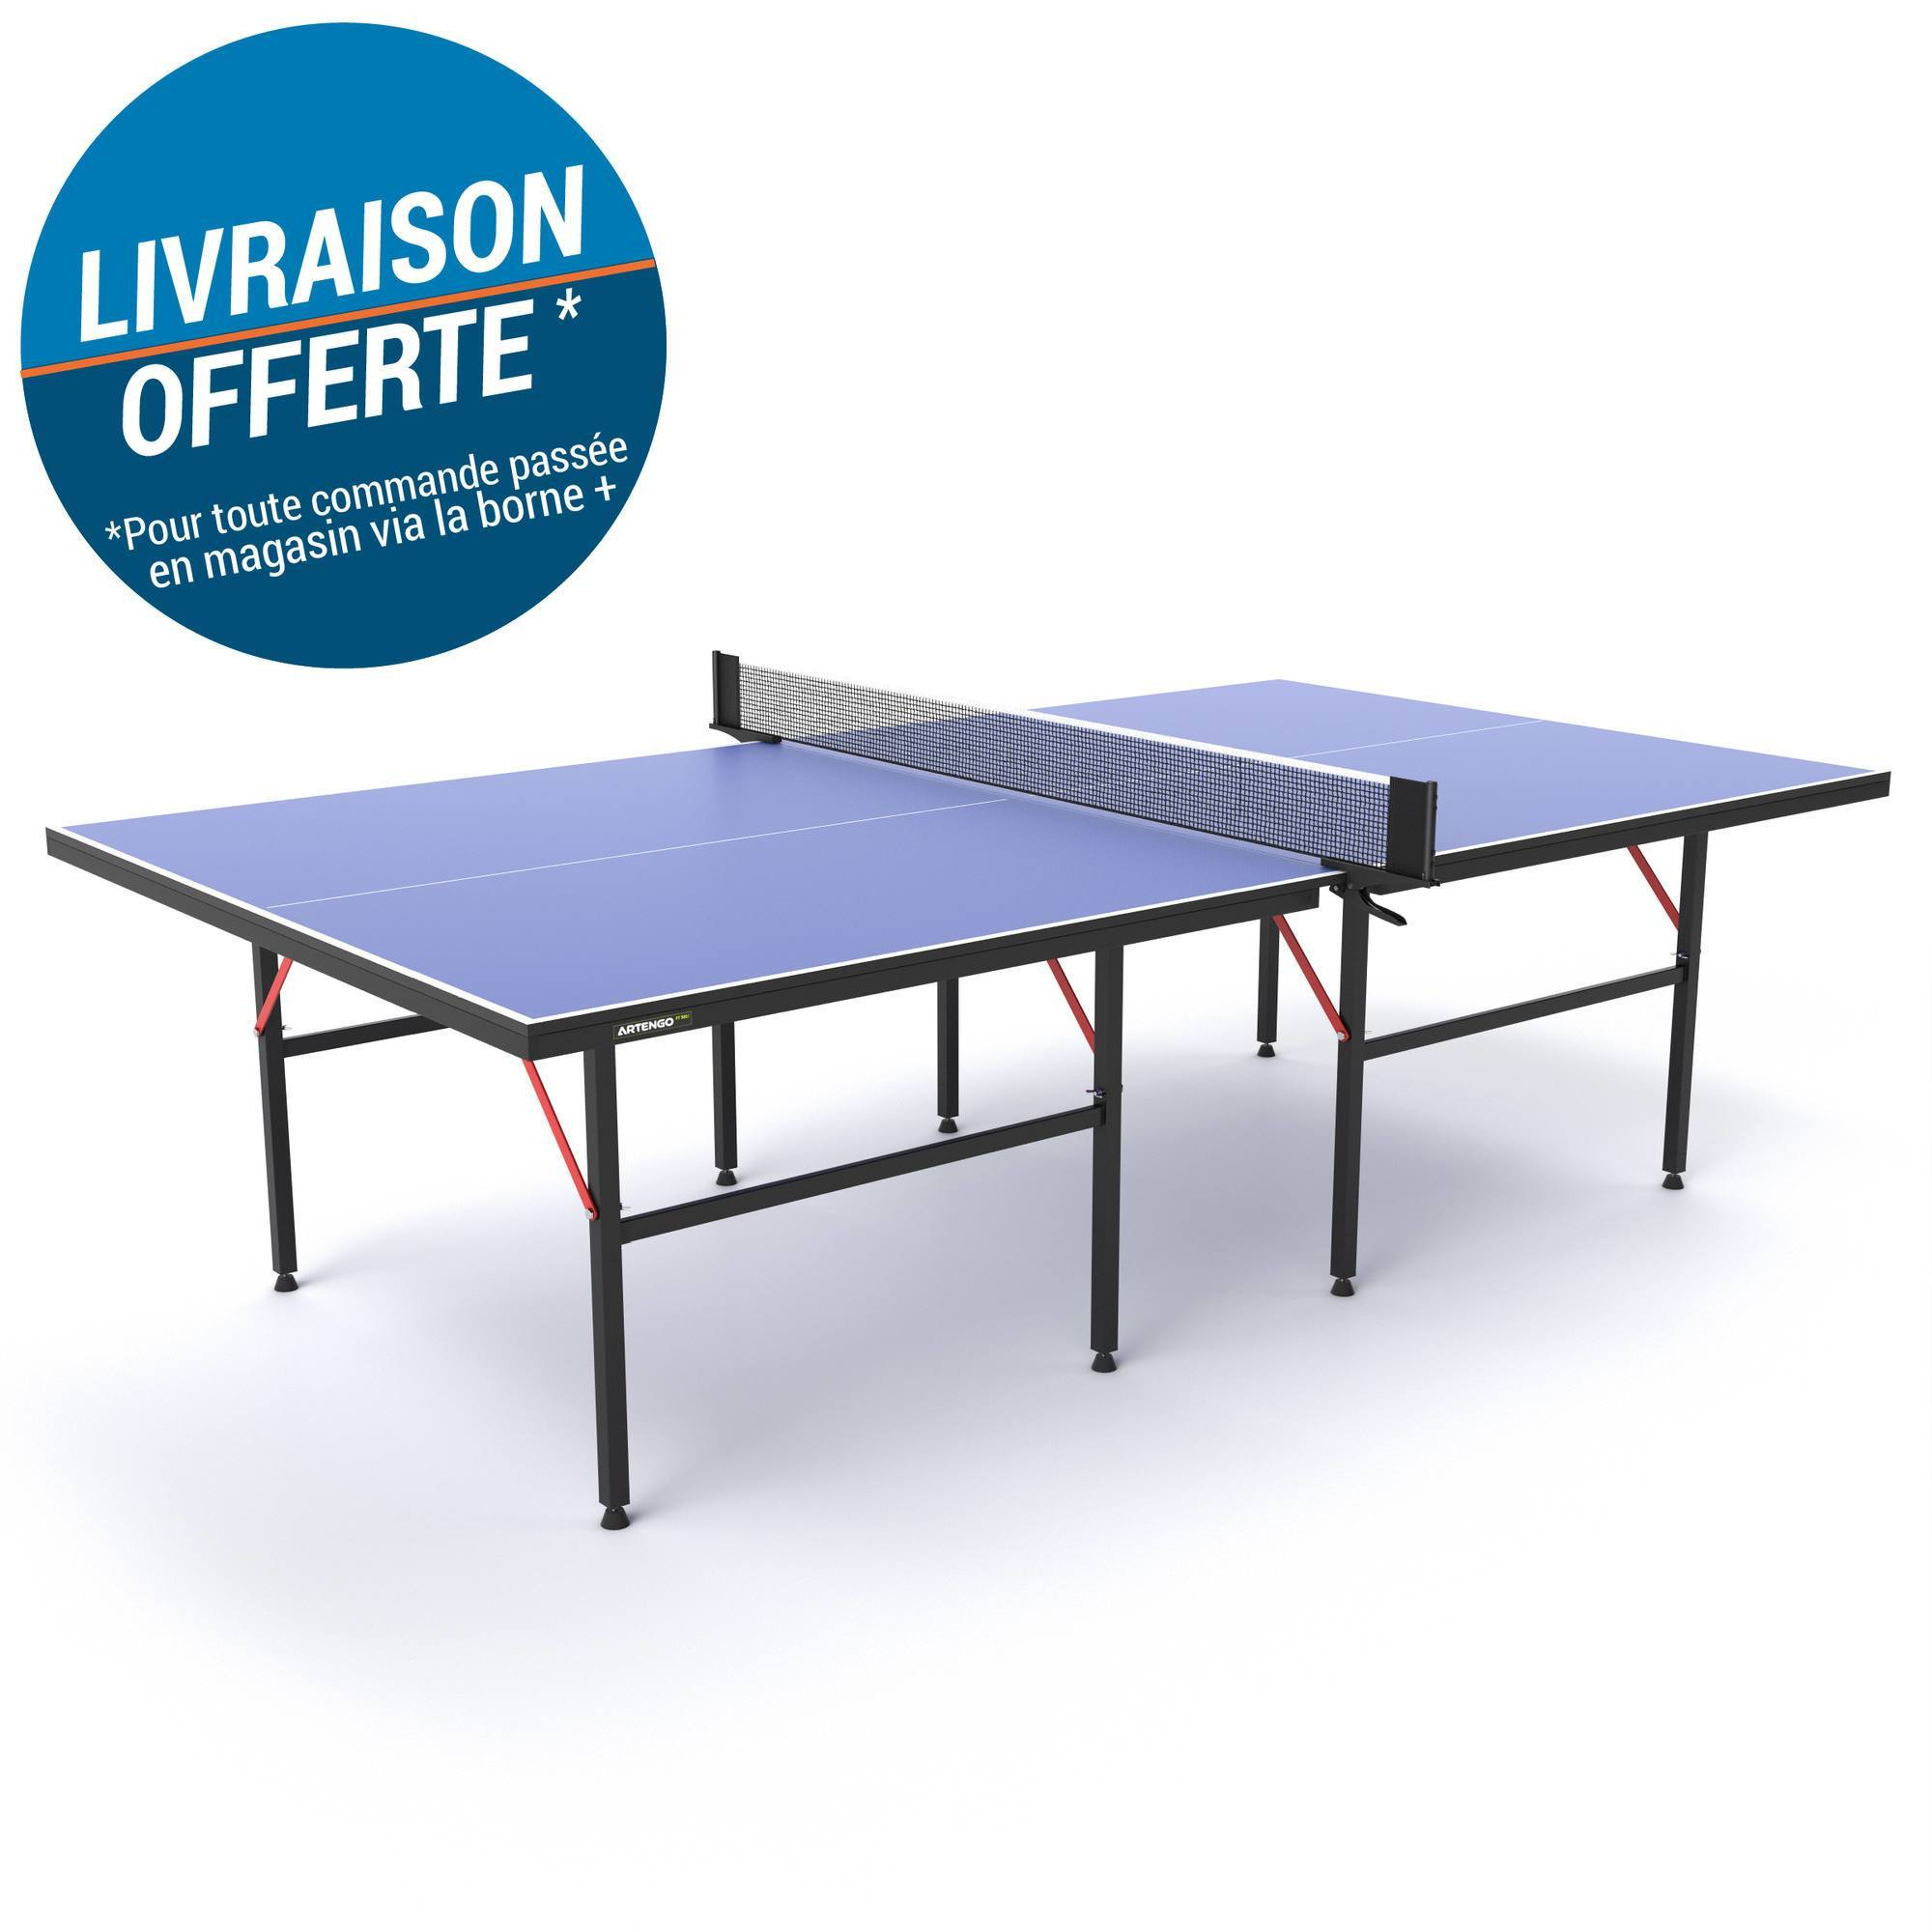 TABLE FT 720 INDOOR ARTENGO 19MM